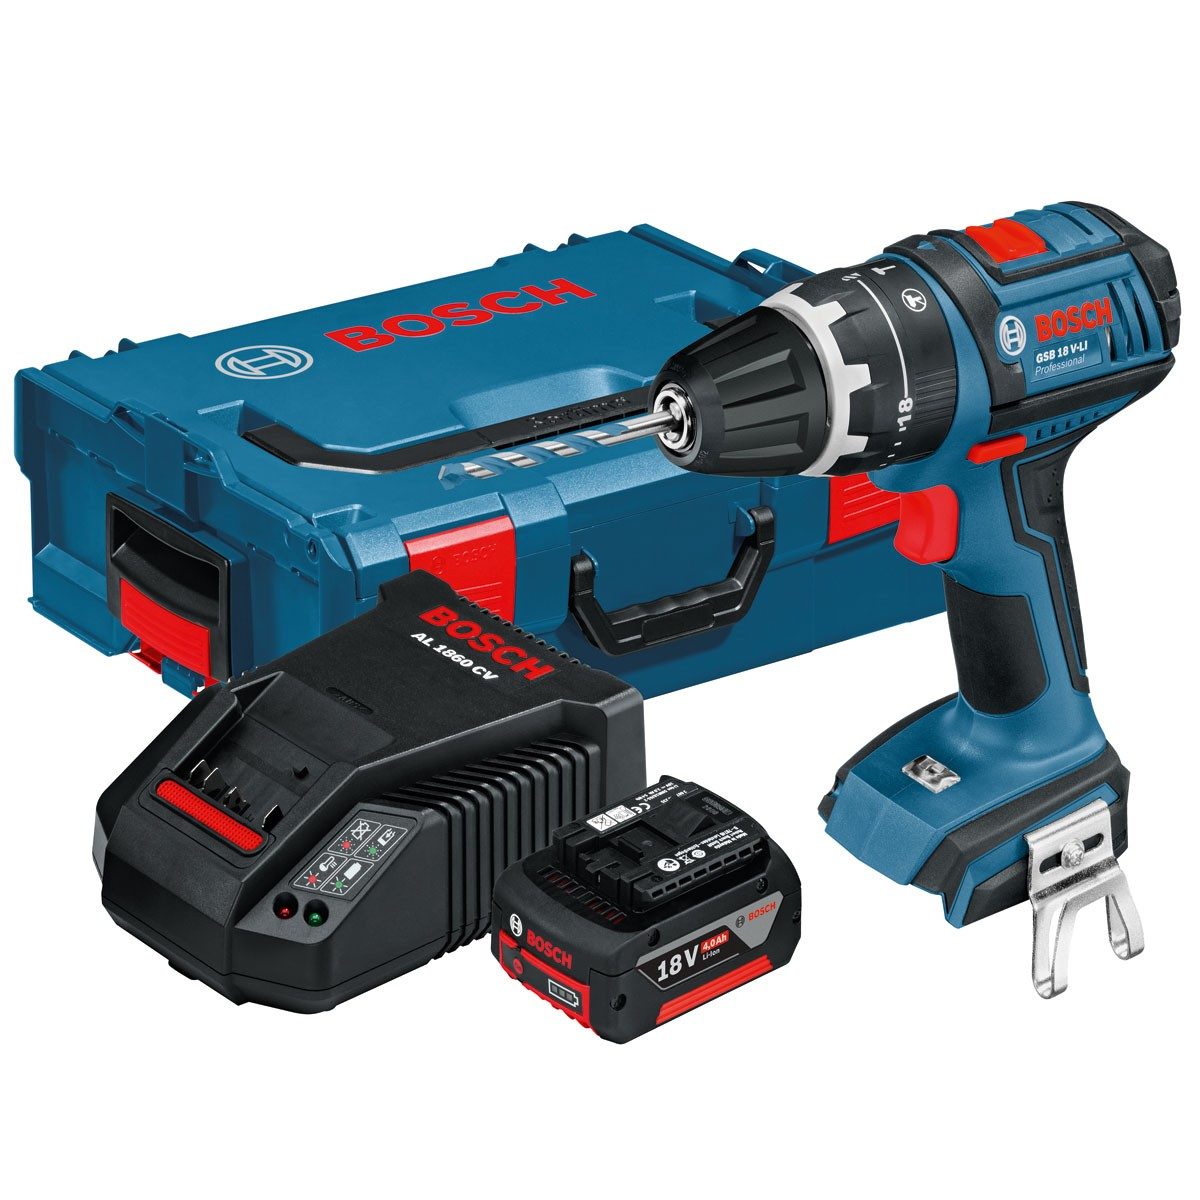 Bosch GSB 18 V-LI Combi Drill Dynamic Series inc 1x 4Ah Battery 060186717E